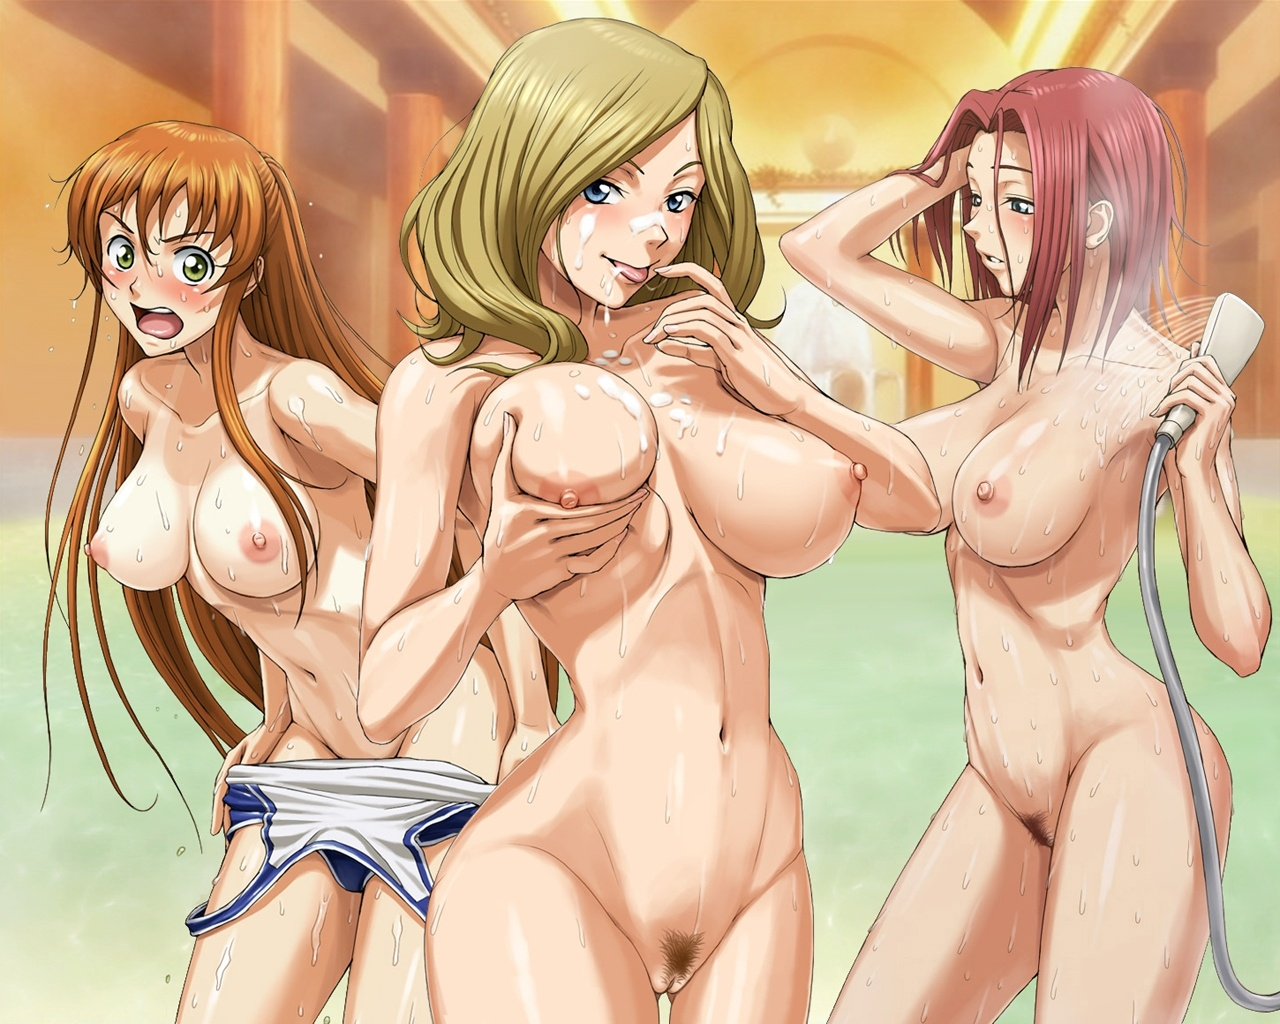 with big nude Anime tits girls